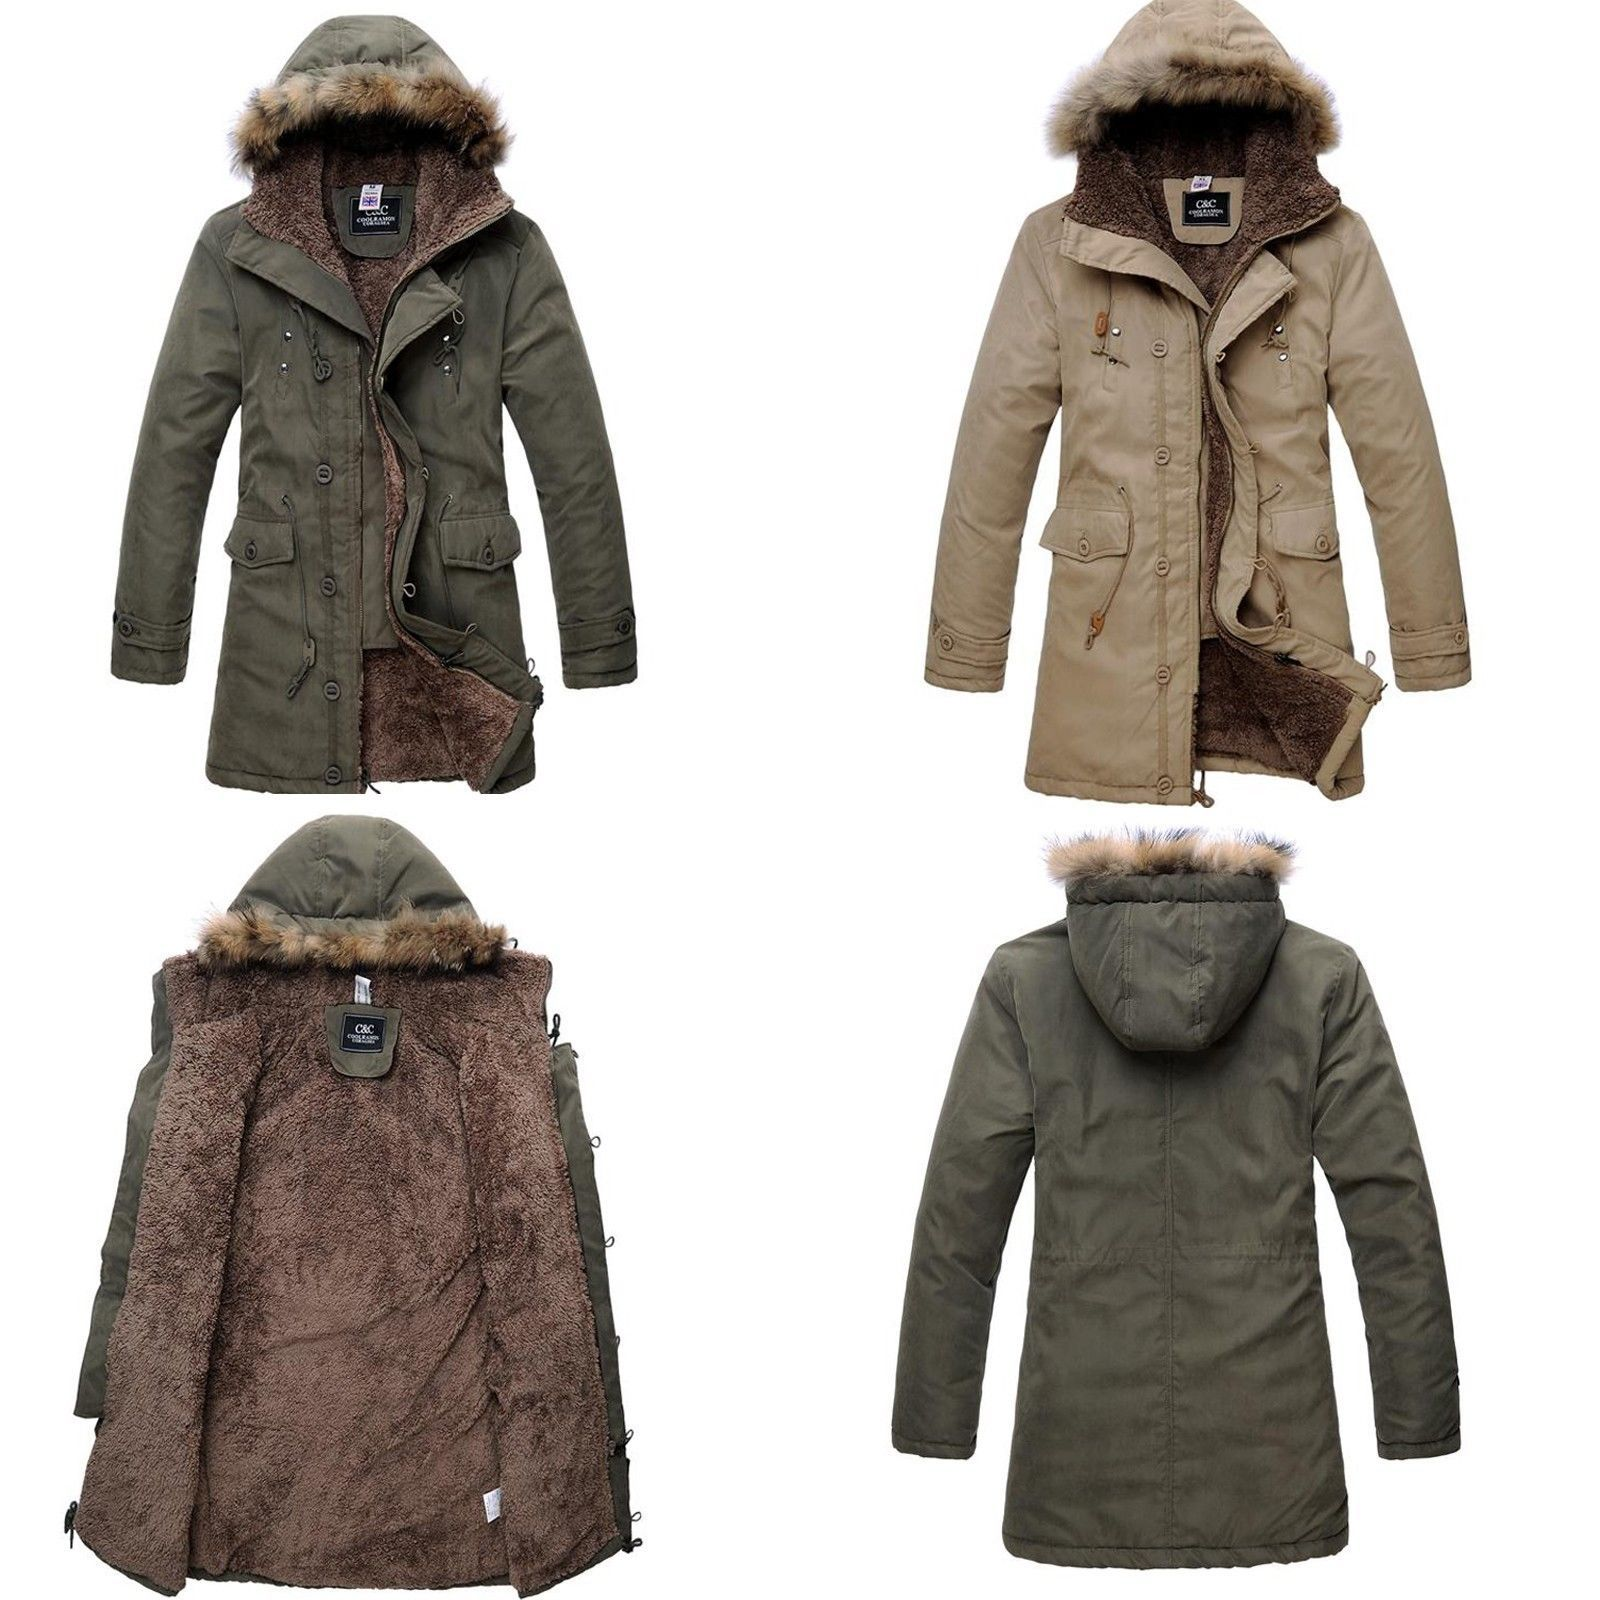 Men's Military Hooded Fur Collar Winter Warm Long Coat Jackets ...